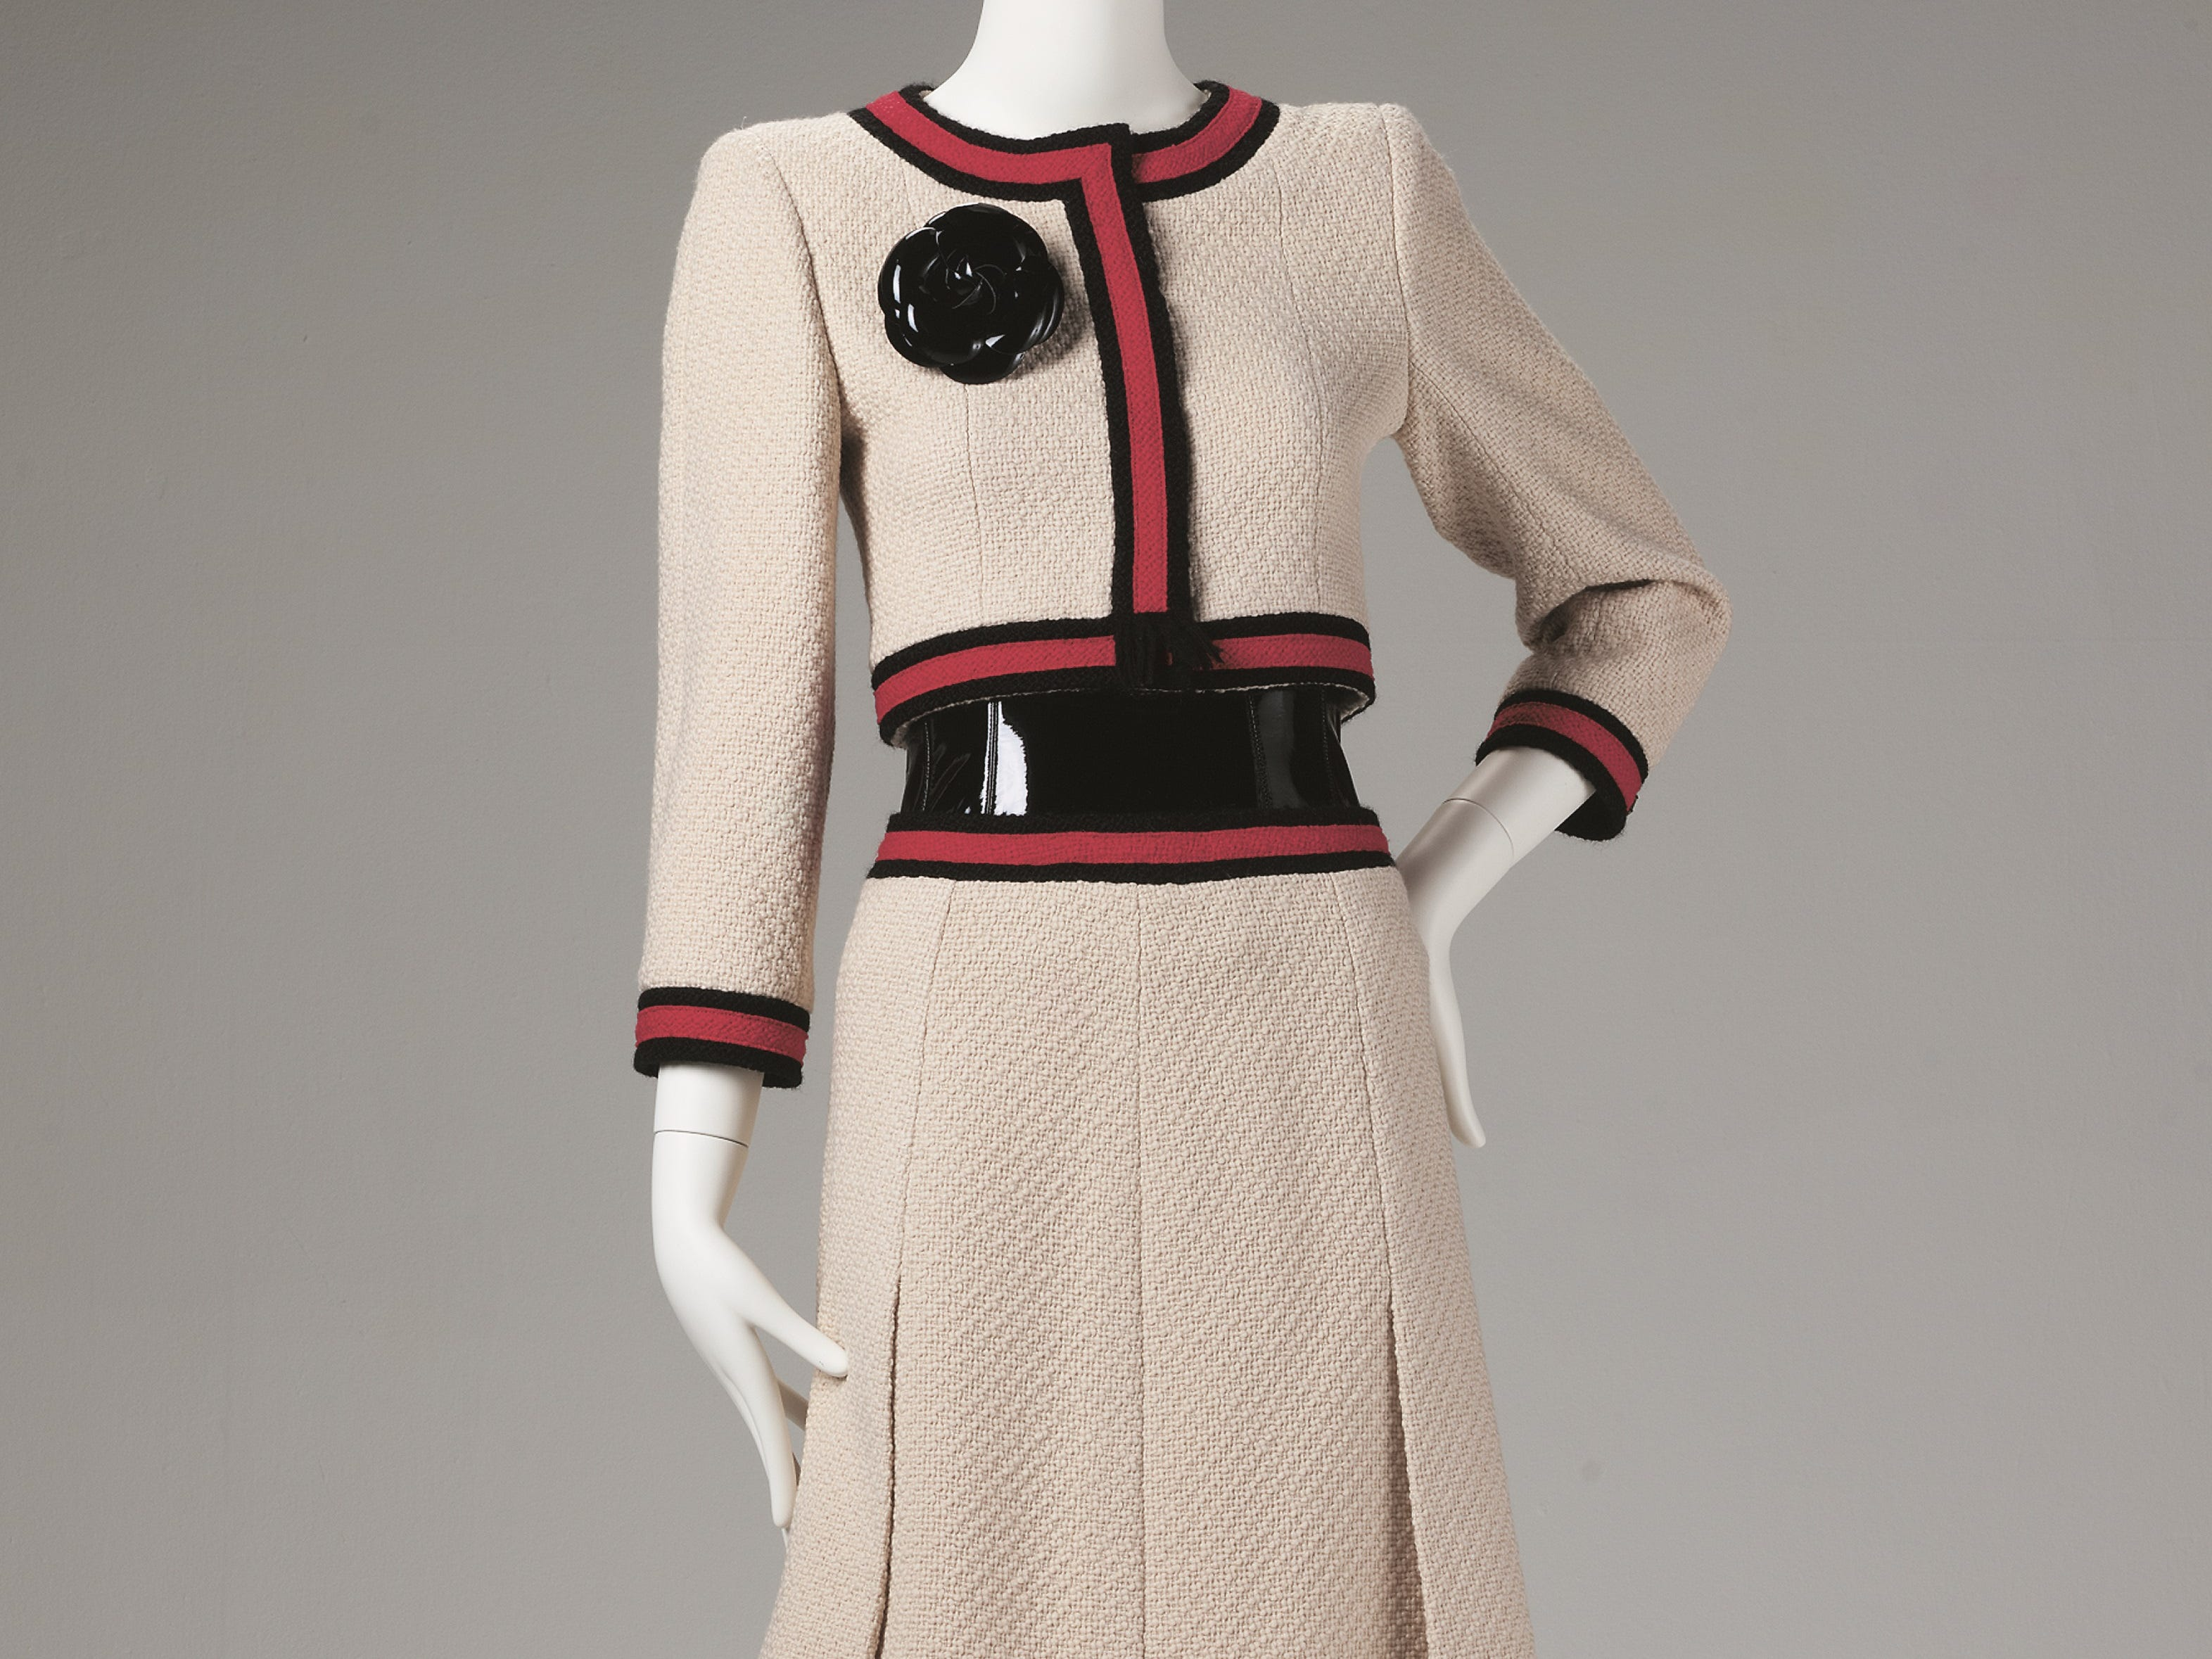 Karl Lagerfeld; Jacket, skirt, boots, corset and flower corsage; 2001; wool, silk, patent leather; 17 x 14 1/2 in. (43.2 x 36.8 cm); Collection of Phoenix Art Museum, gift of Mrs. Kelly Ellman